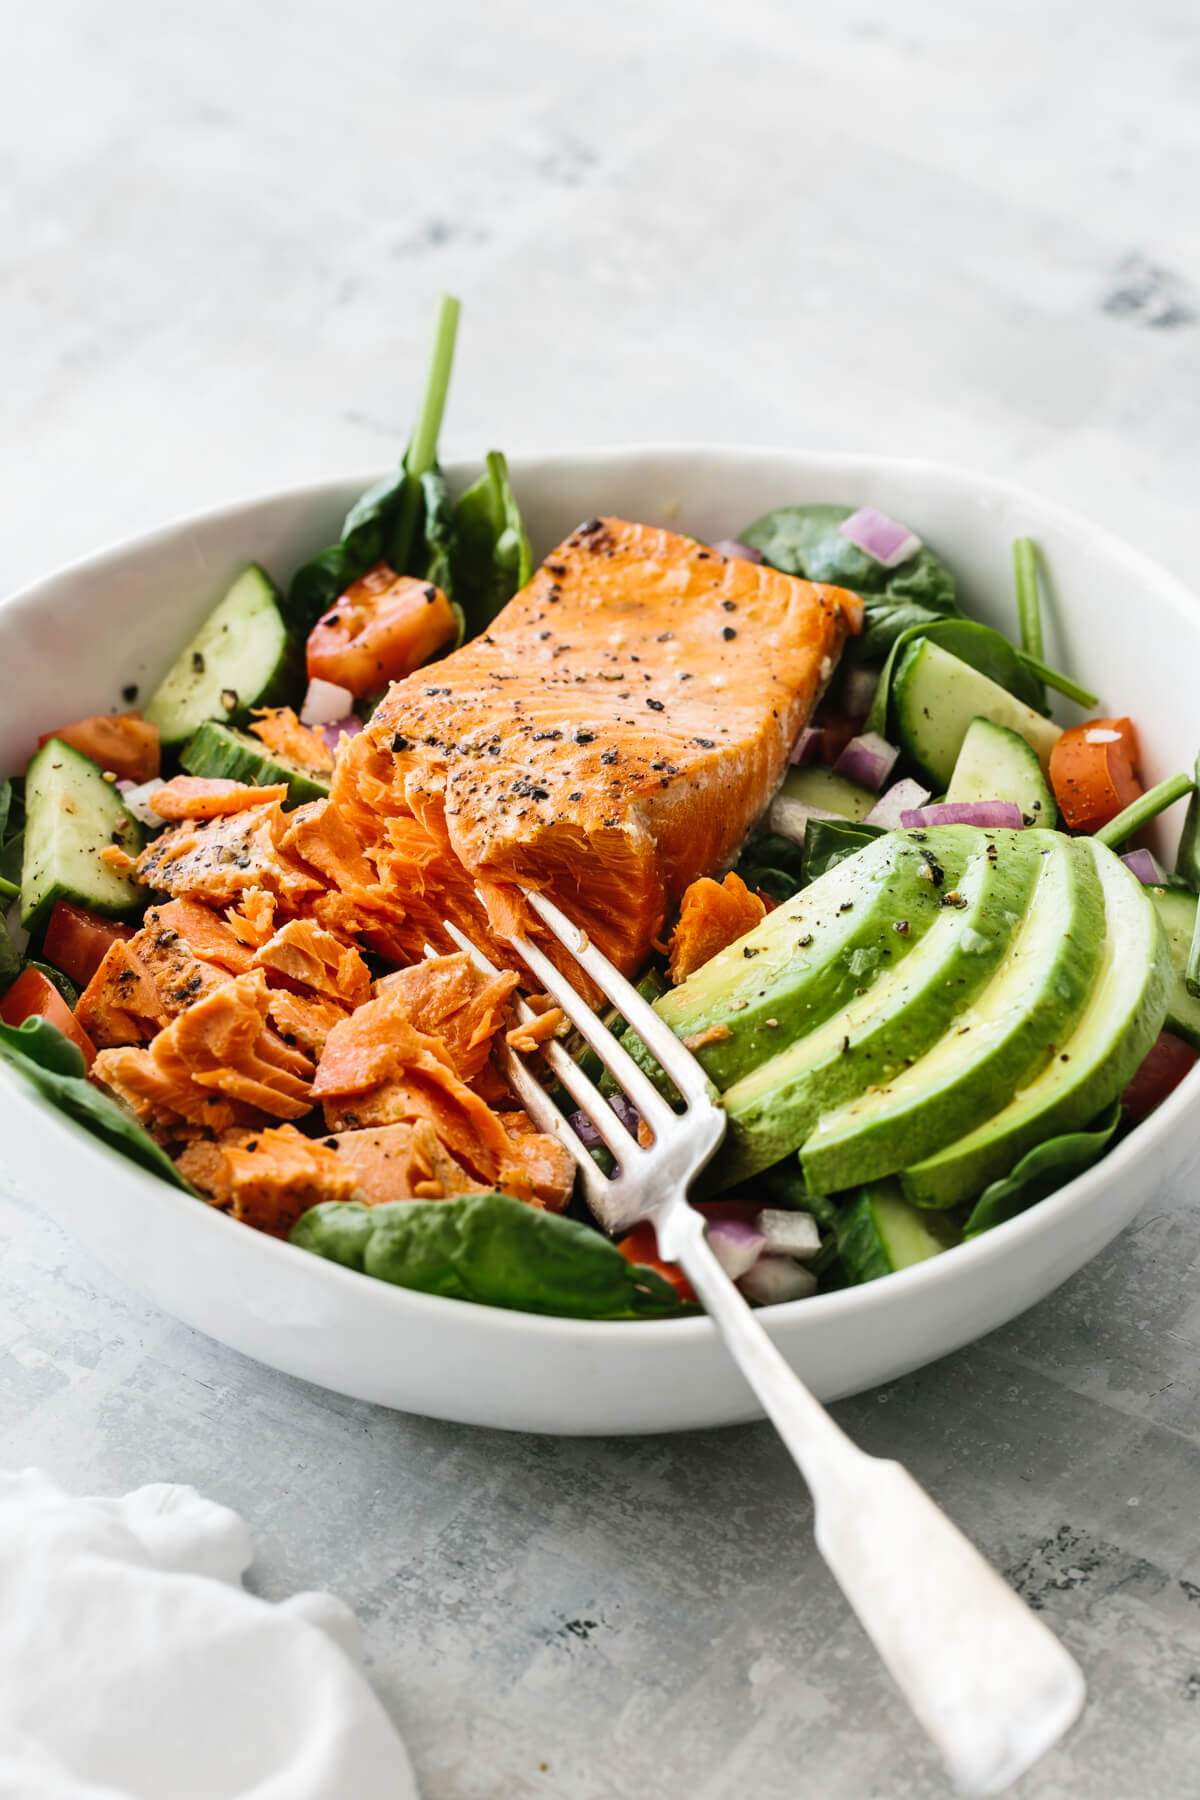 Salmon fillet broken up with fork on top of salad recipe.